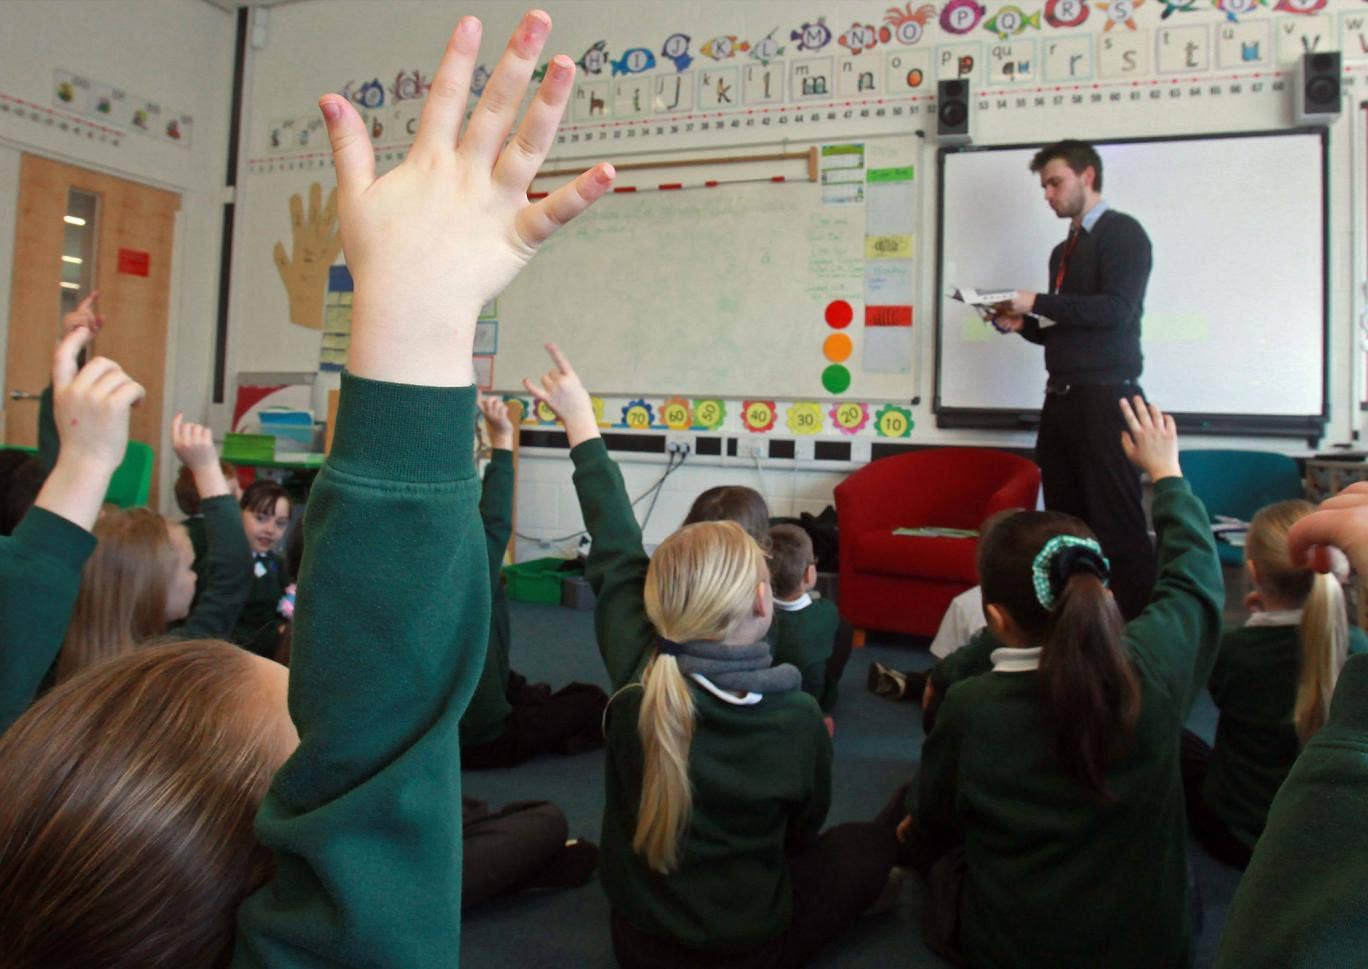 Under Lib Dem plans, sex education would start from the age of seven